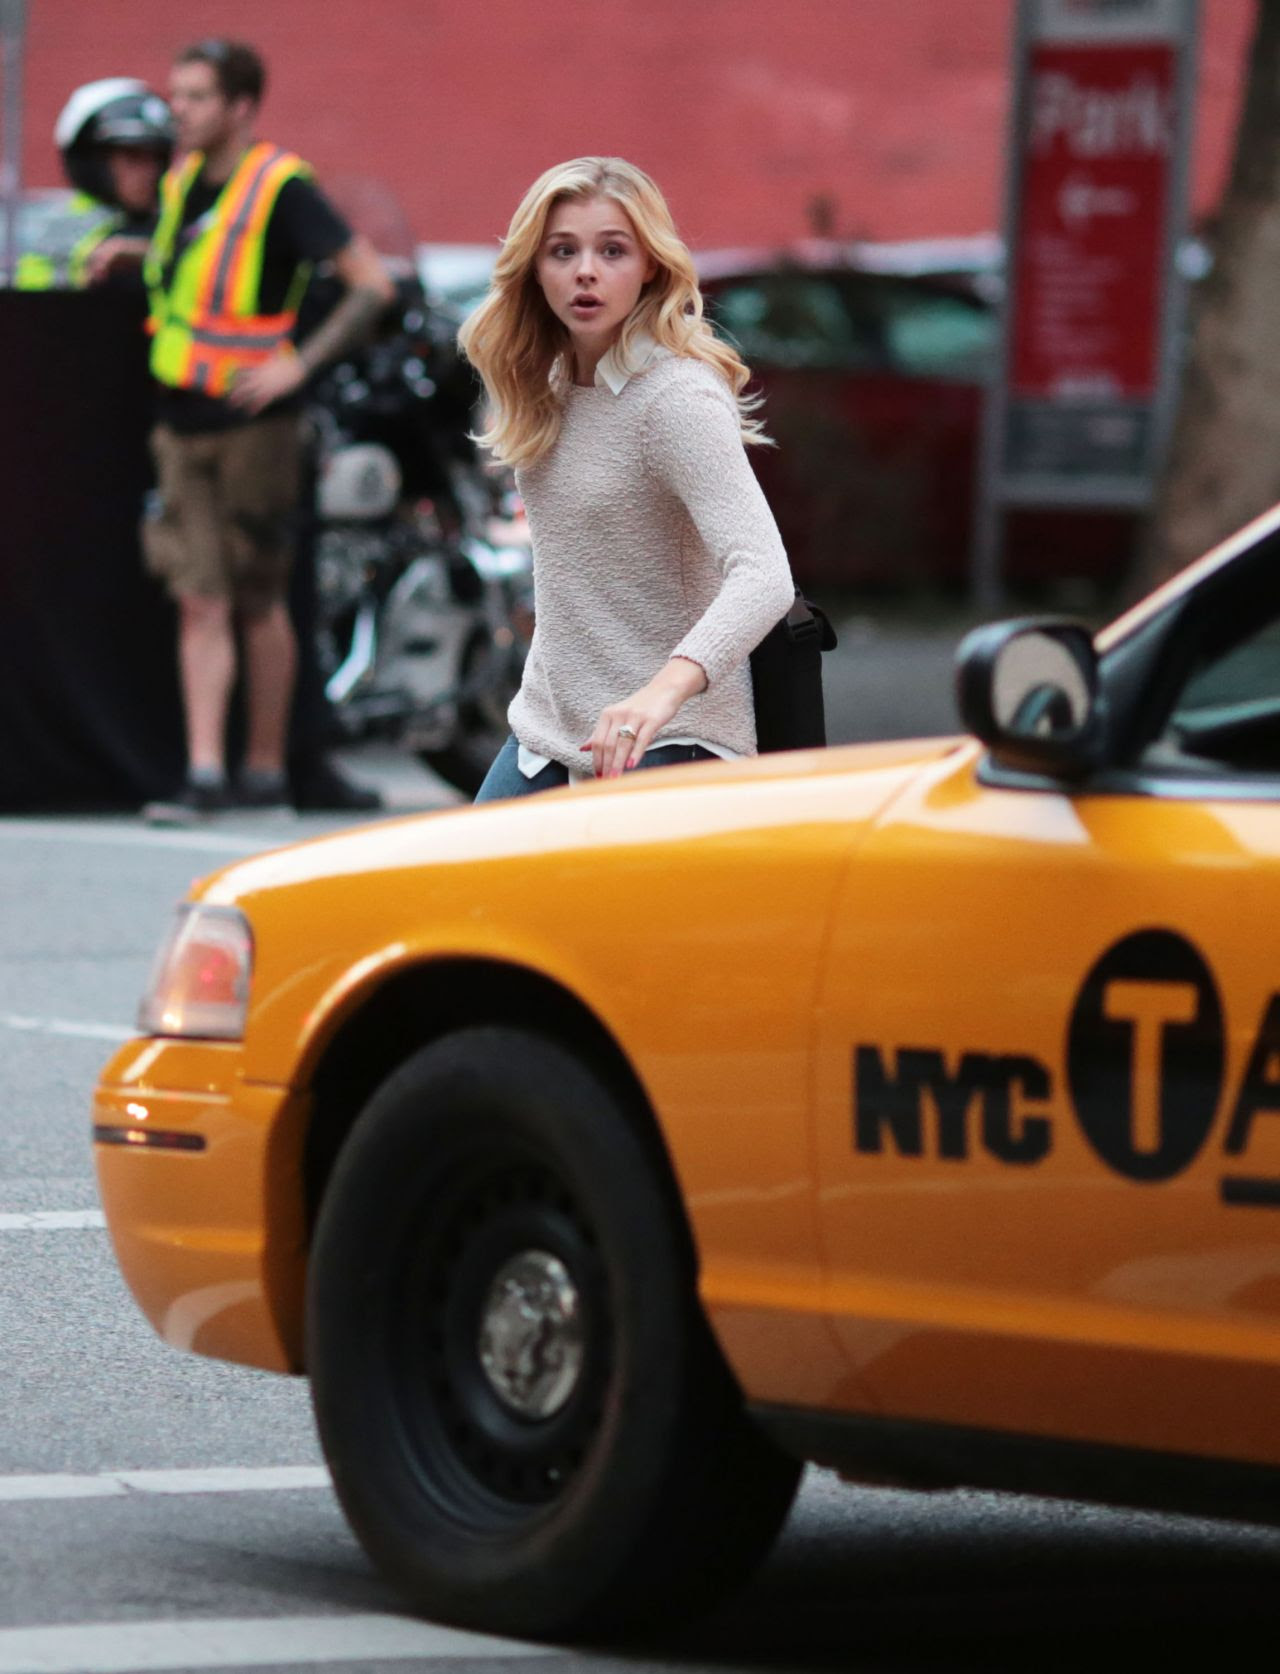 http://celebmafia.com/wp-content/uploads/2015/07/chloe-moretz-set-of-brain-on-fire-in-vancouver-july-2015_12.jpg